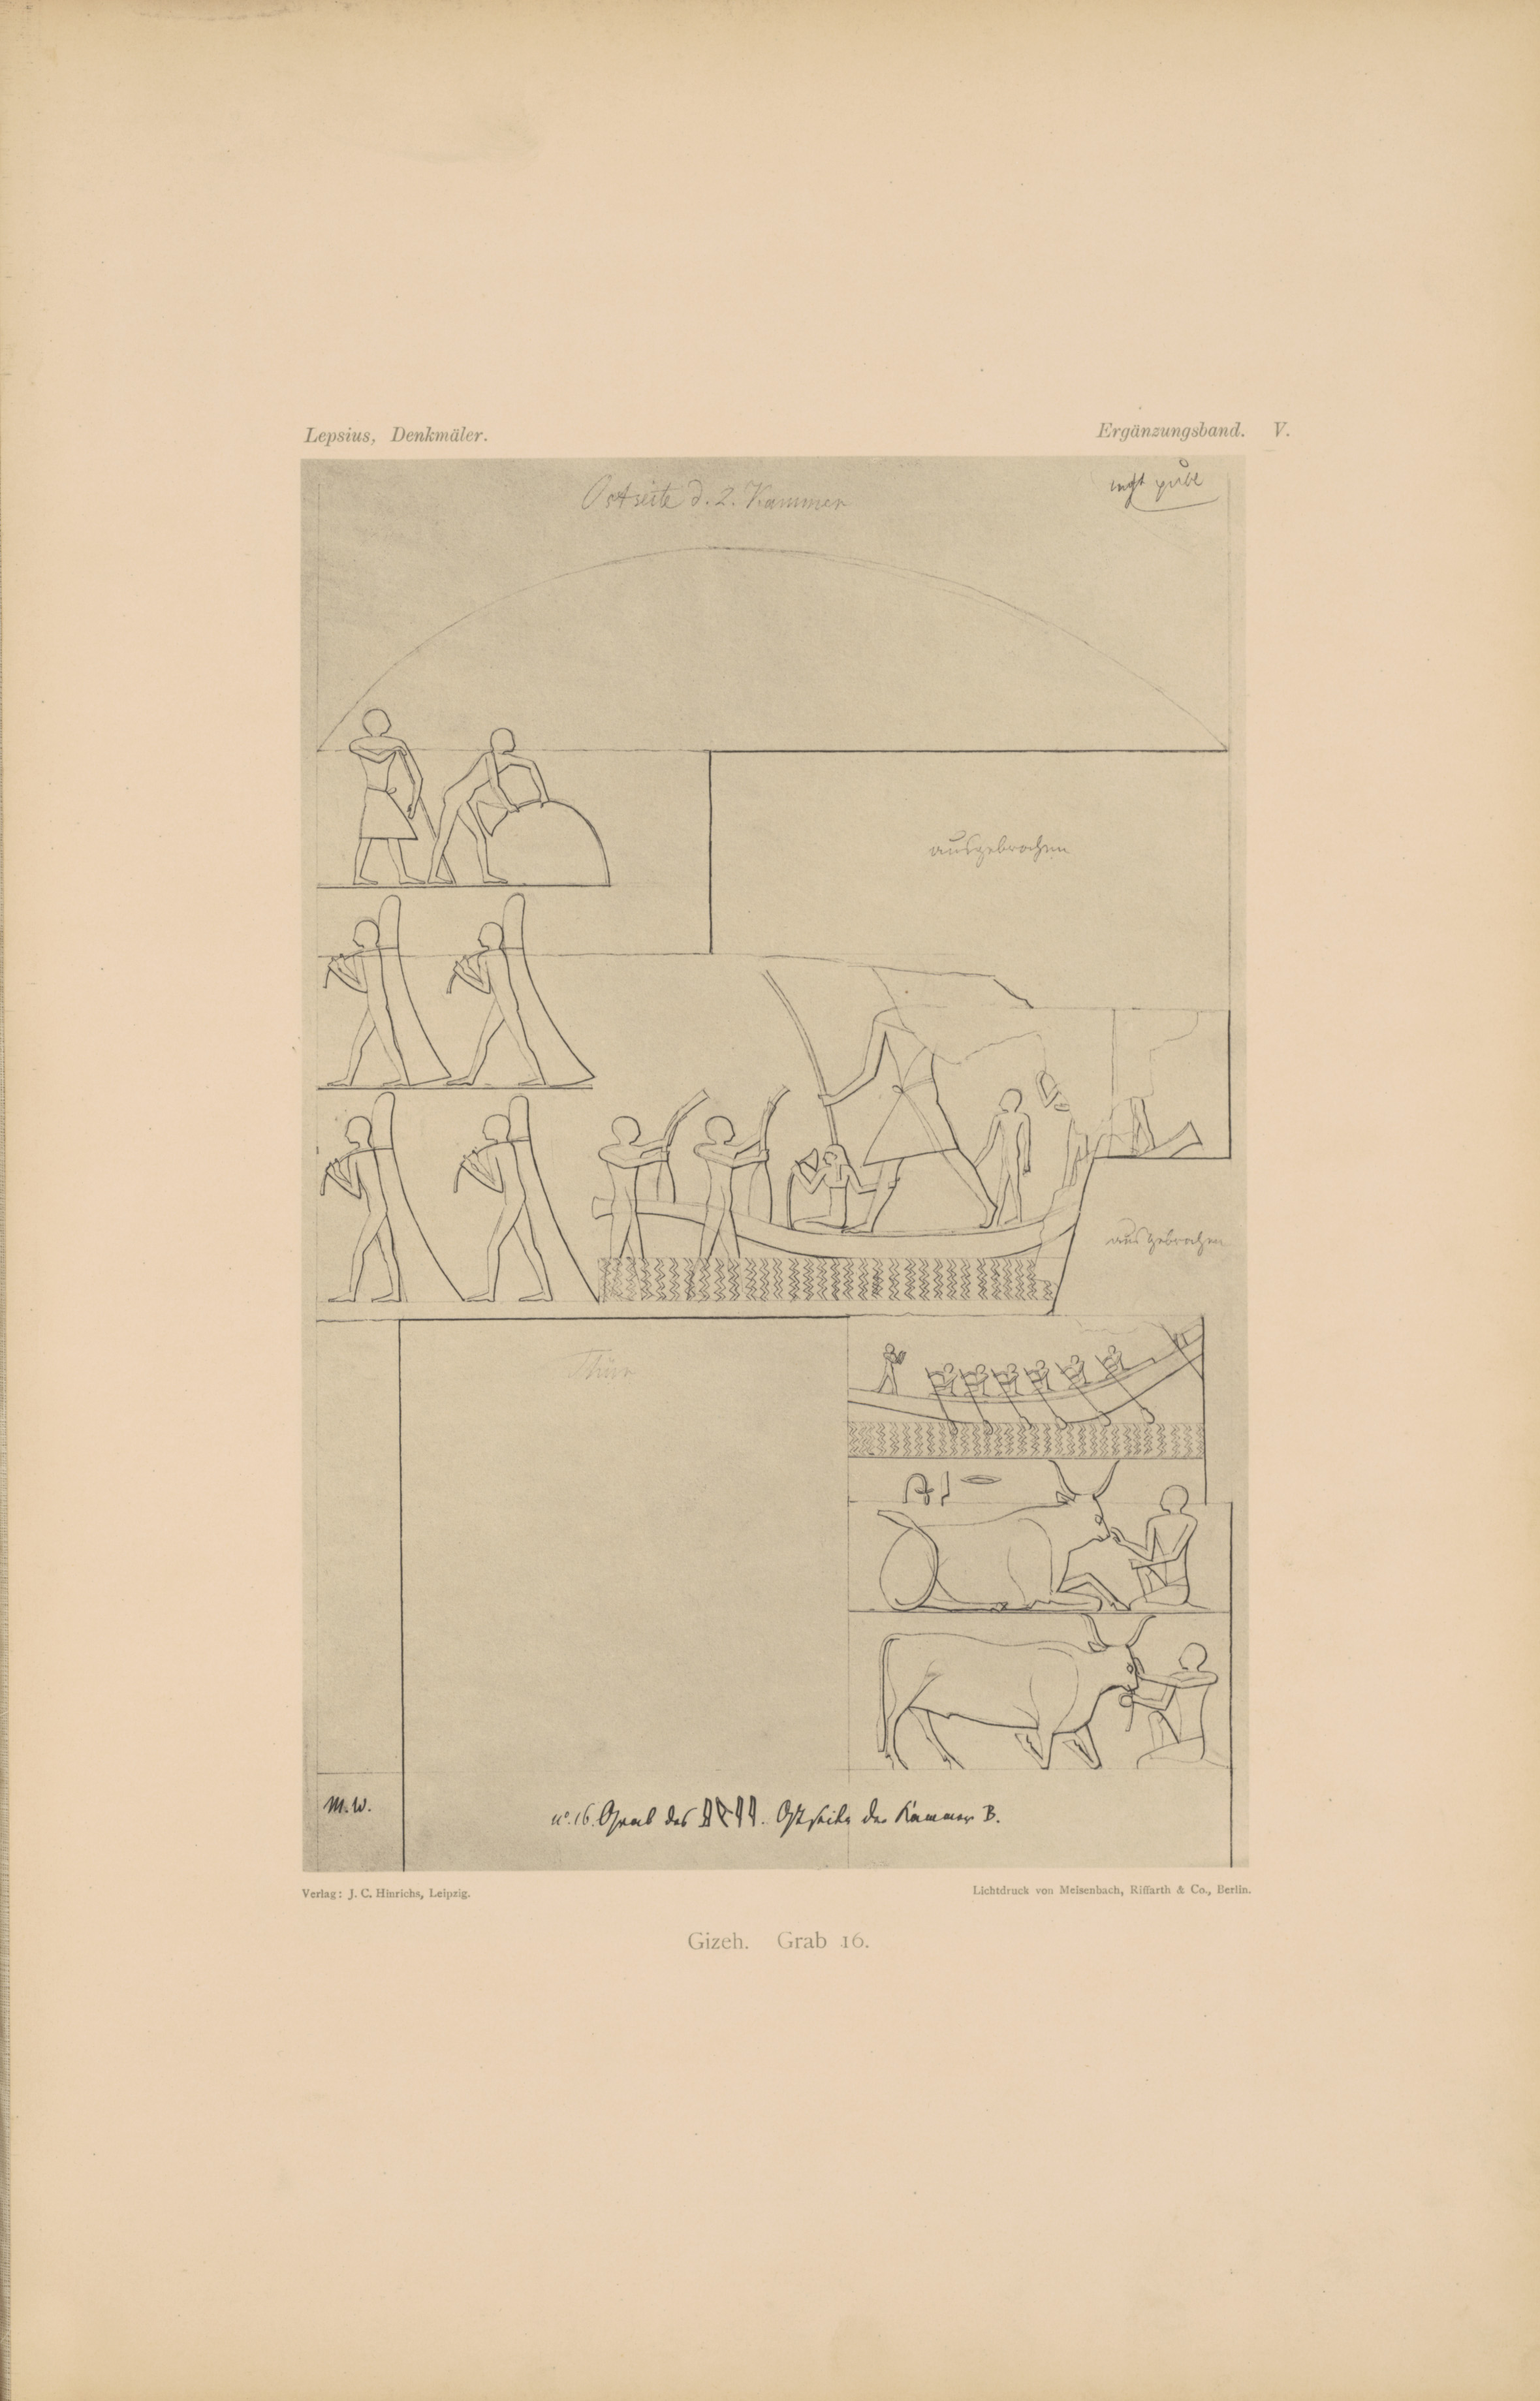 Drawings: G 6020 (= Lepsius 16): relief from chamber 2, E wall